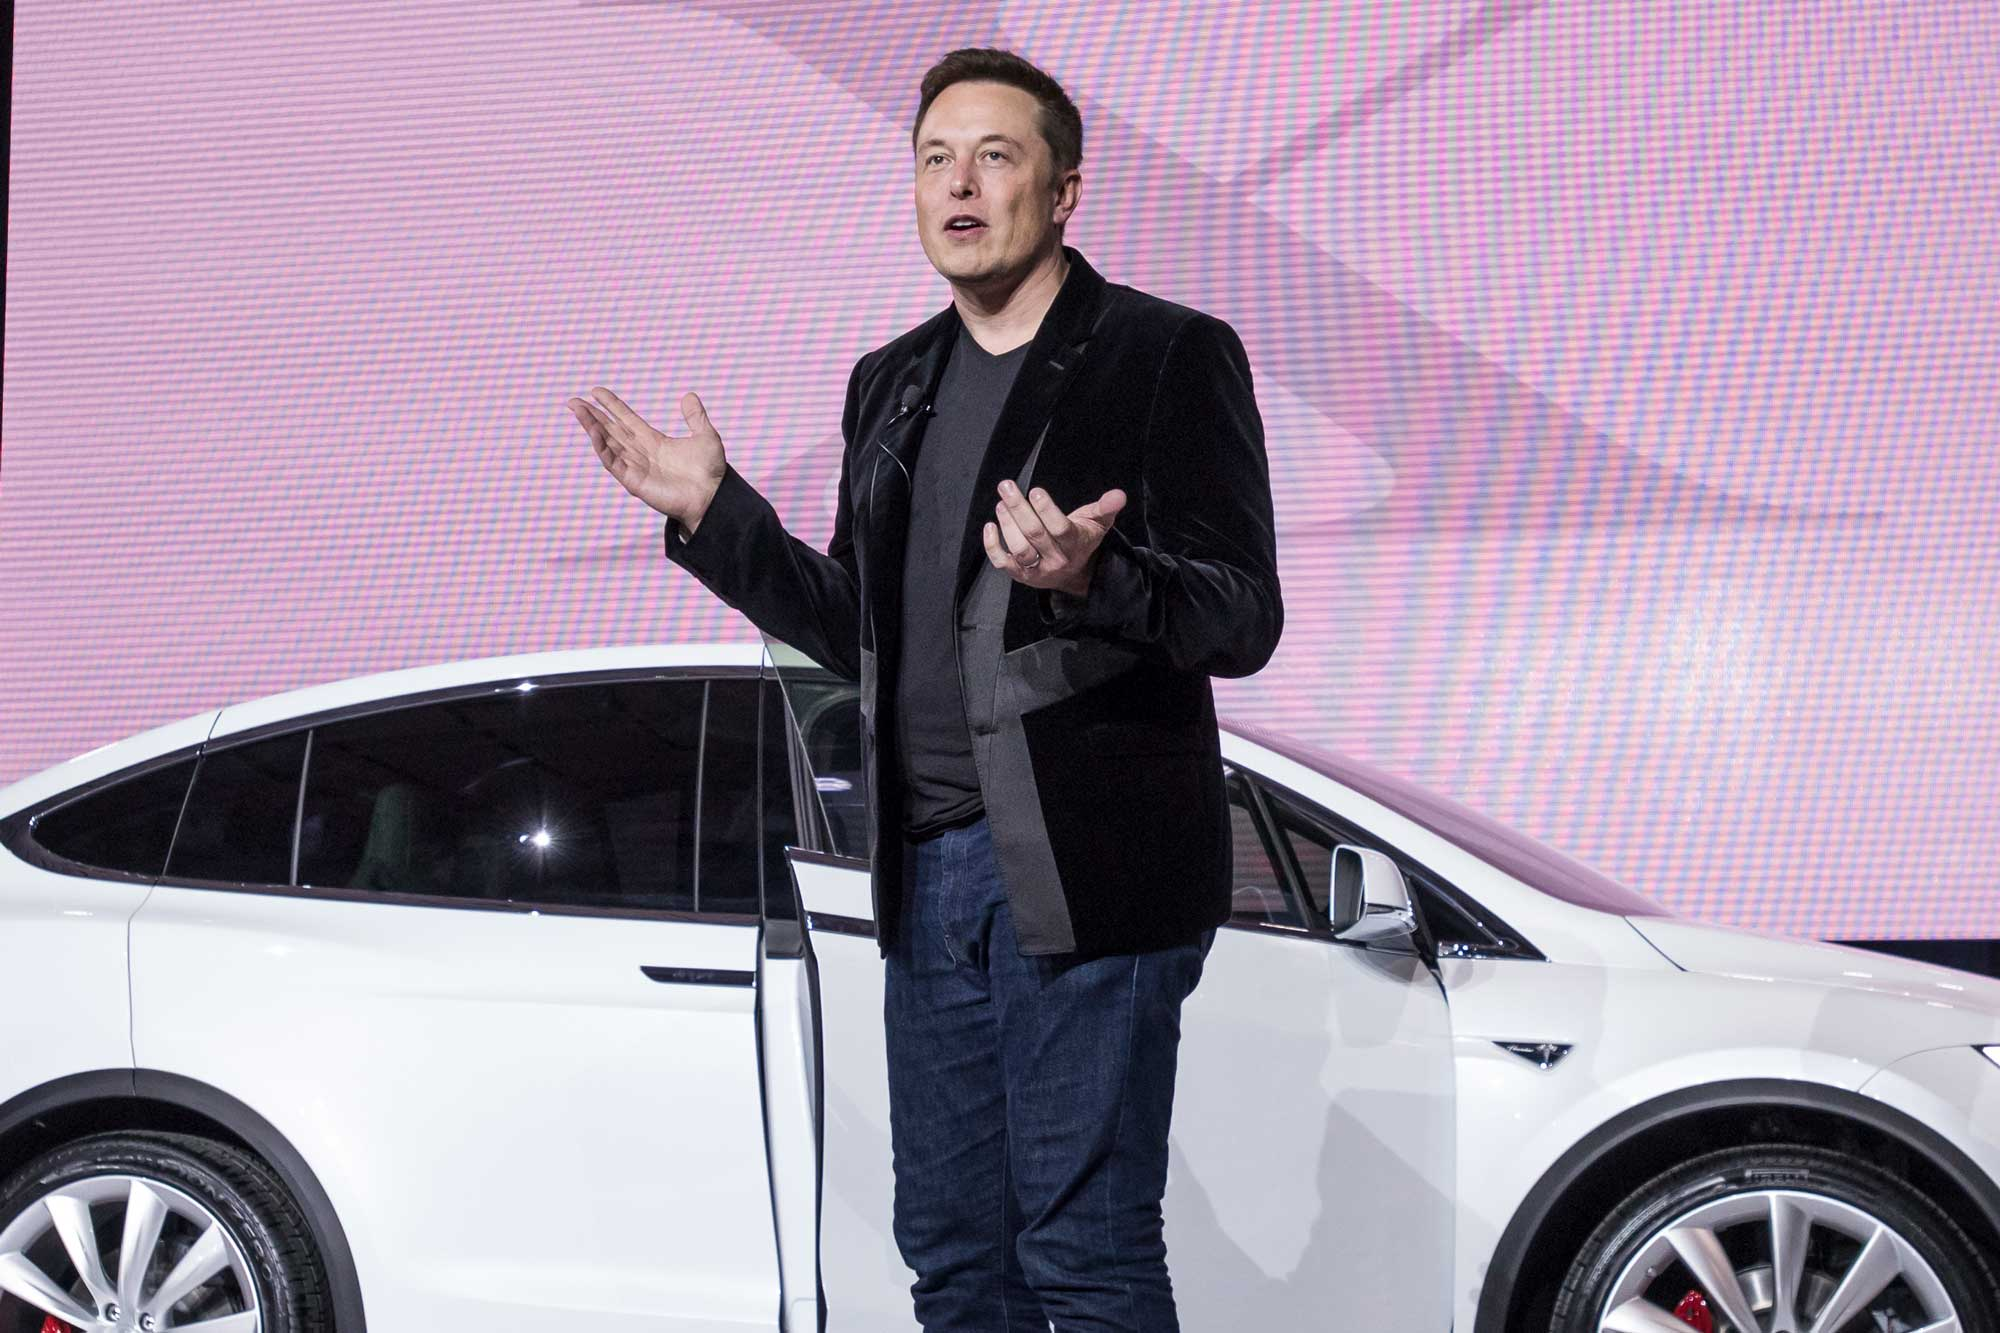 Elon Musk hates hydrogen, but automakers are still investing